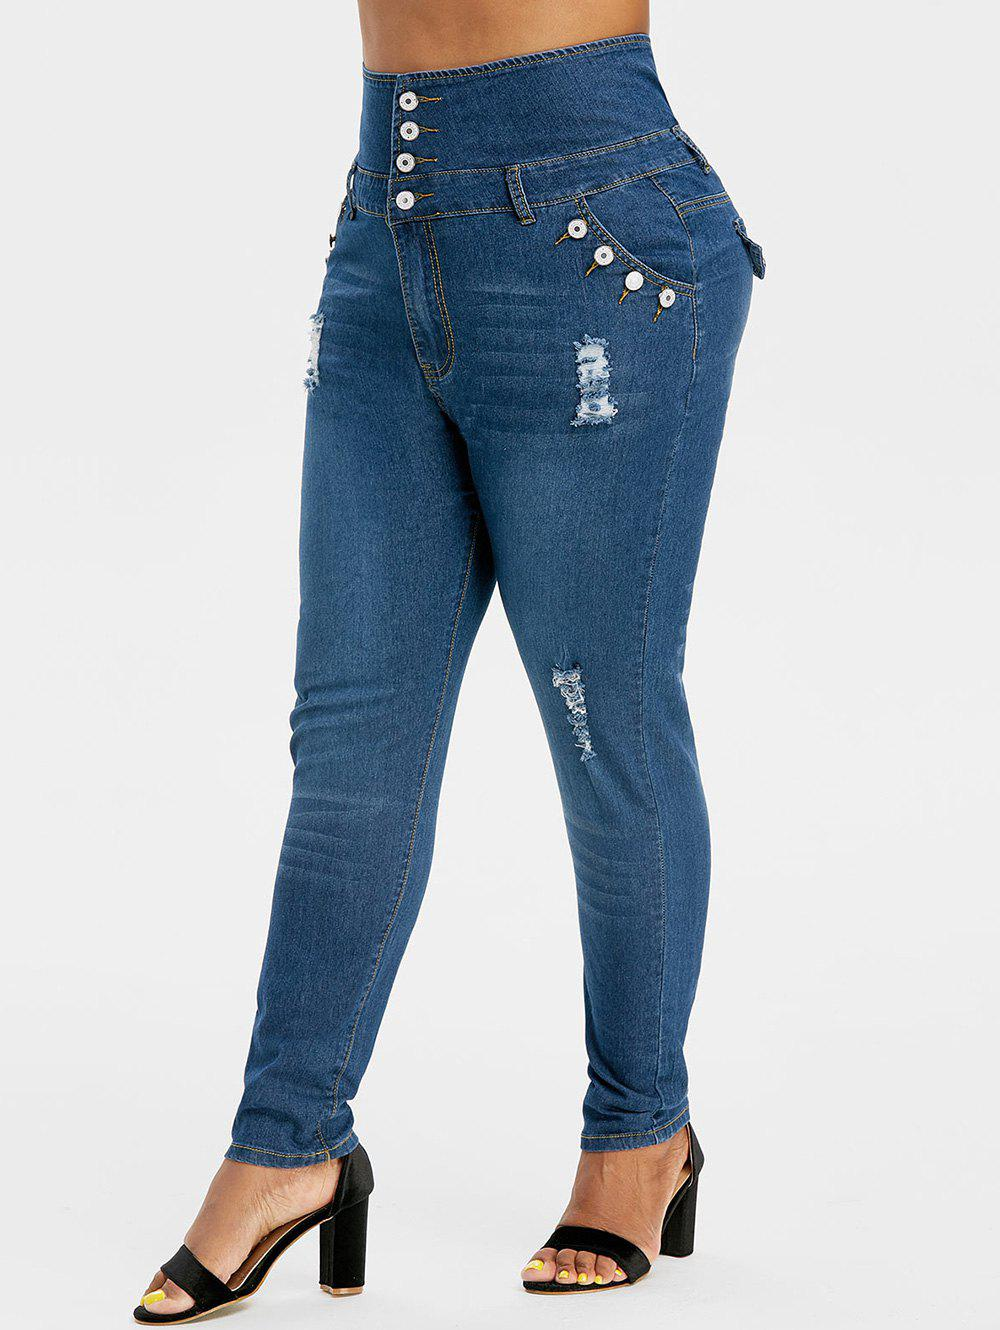 Dark Wash Button Fly Distressed Plus Size Skinny Jeans - DEEP BLUE 5X